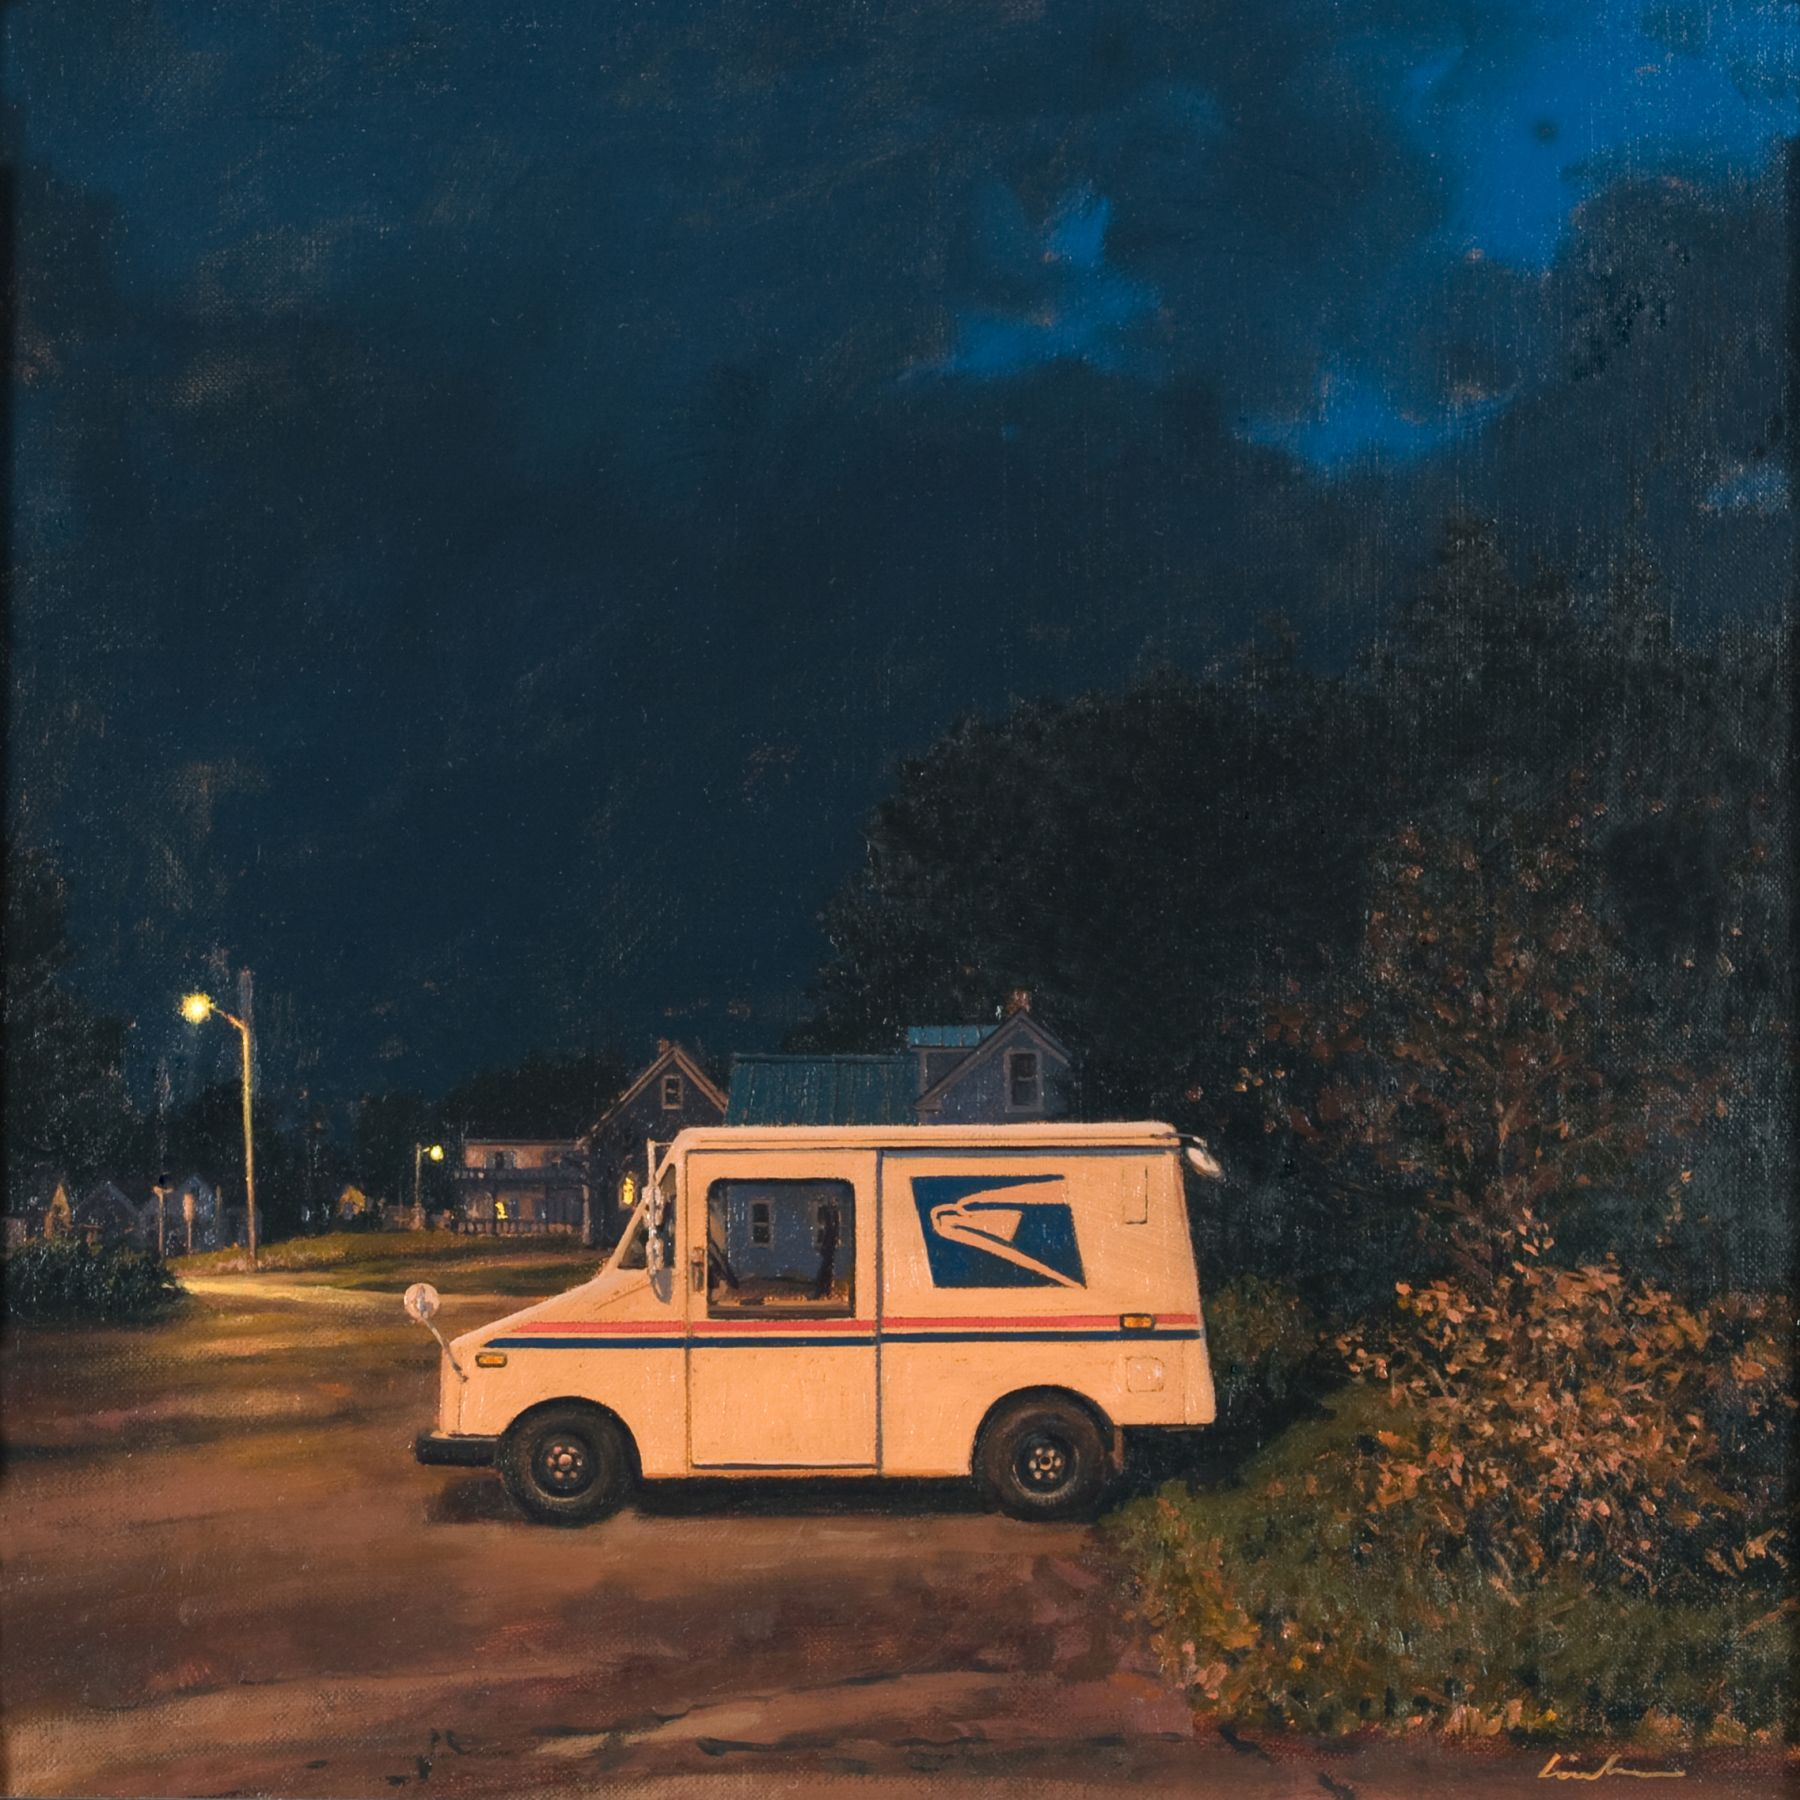 Linden Frederick, Mail (SOLD), 2008, oil on panel, 12 1/4 x 12 1/4 inches